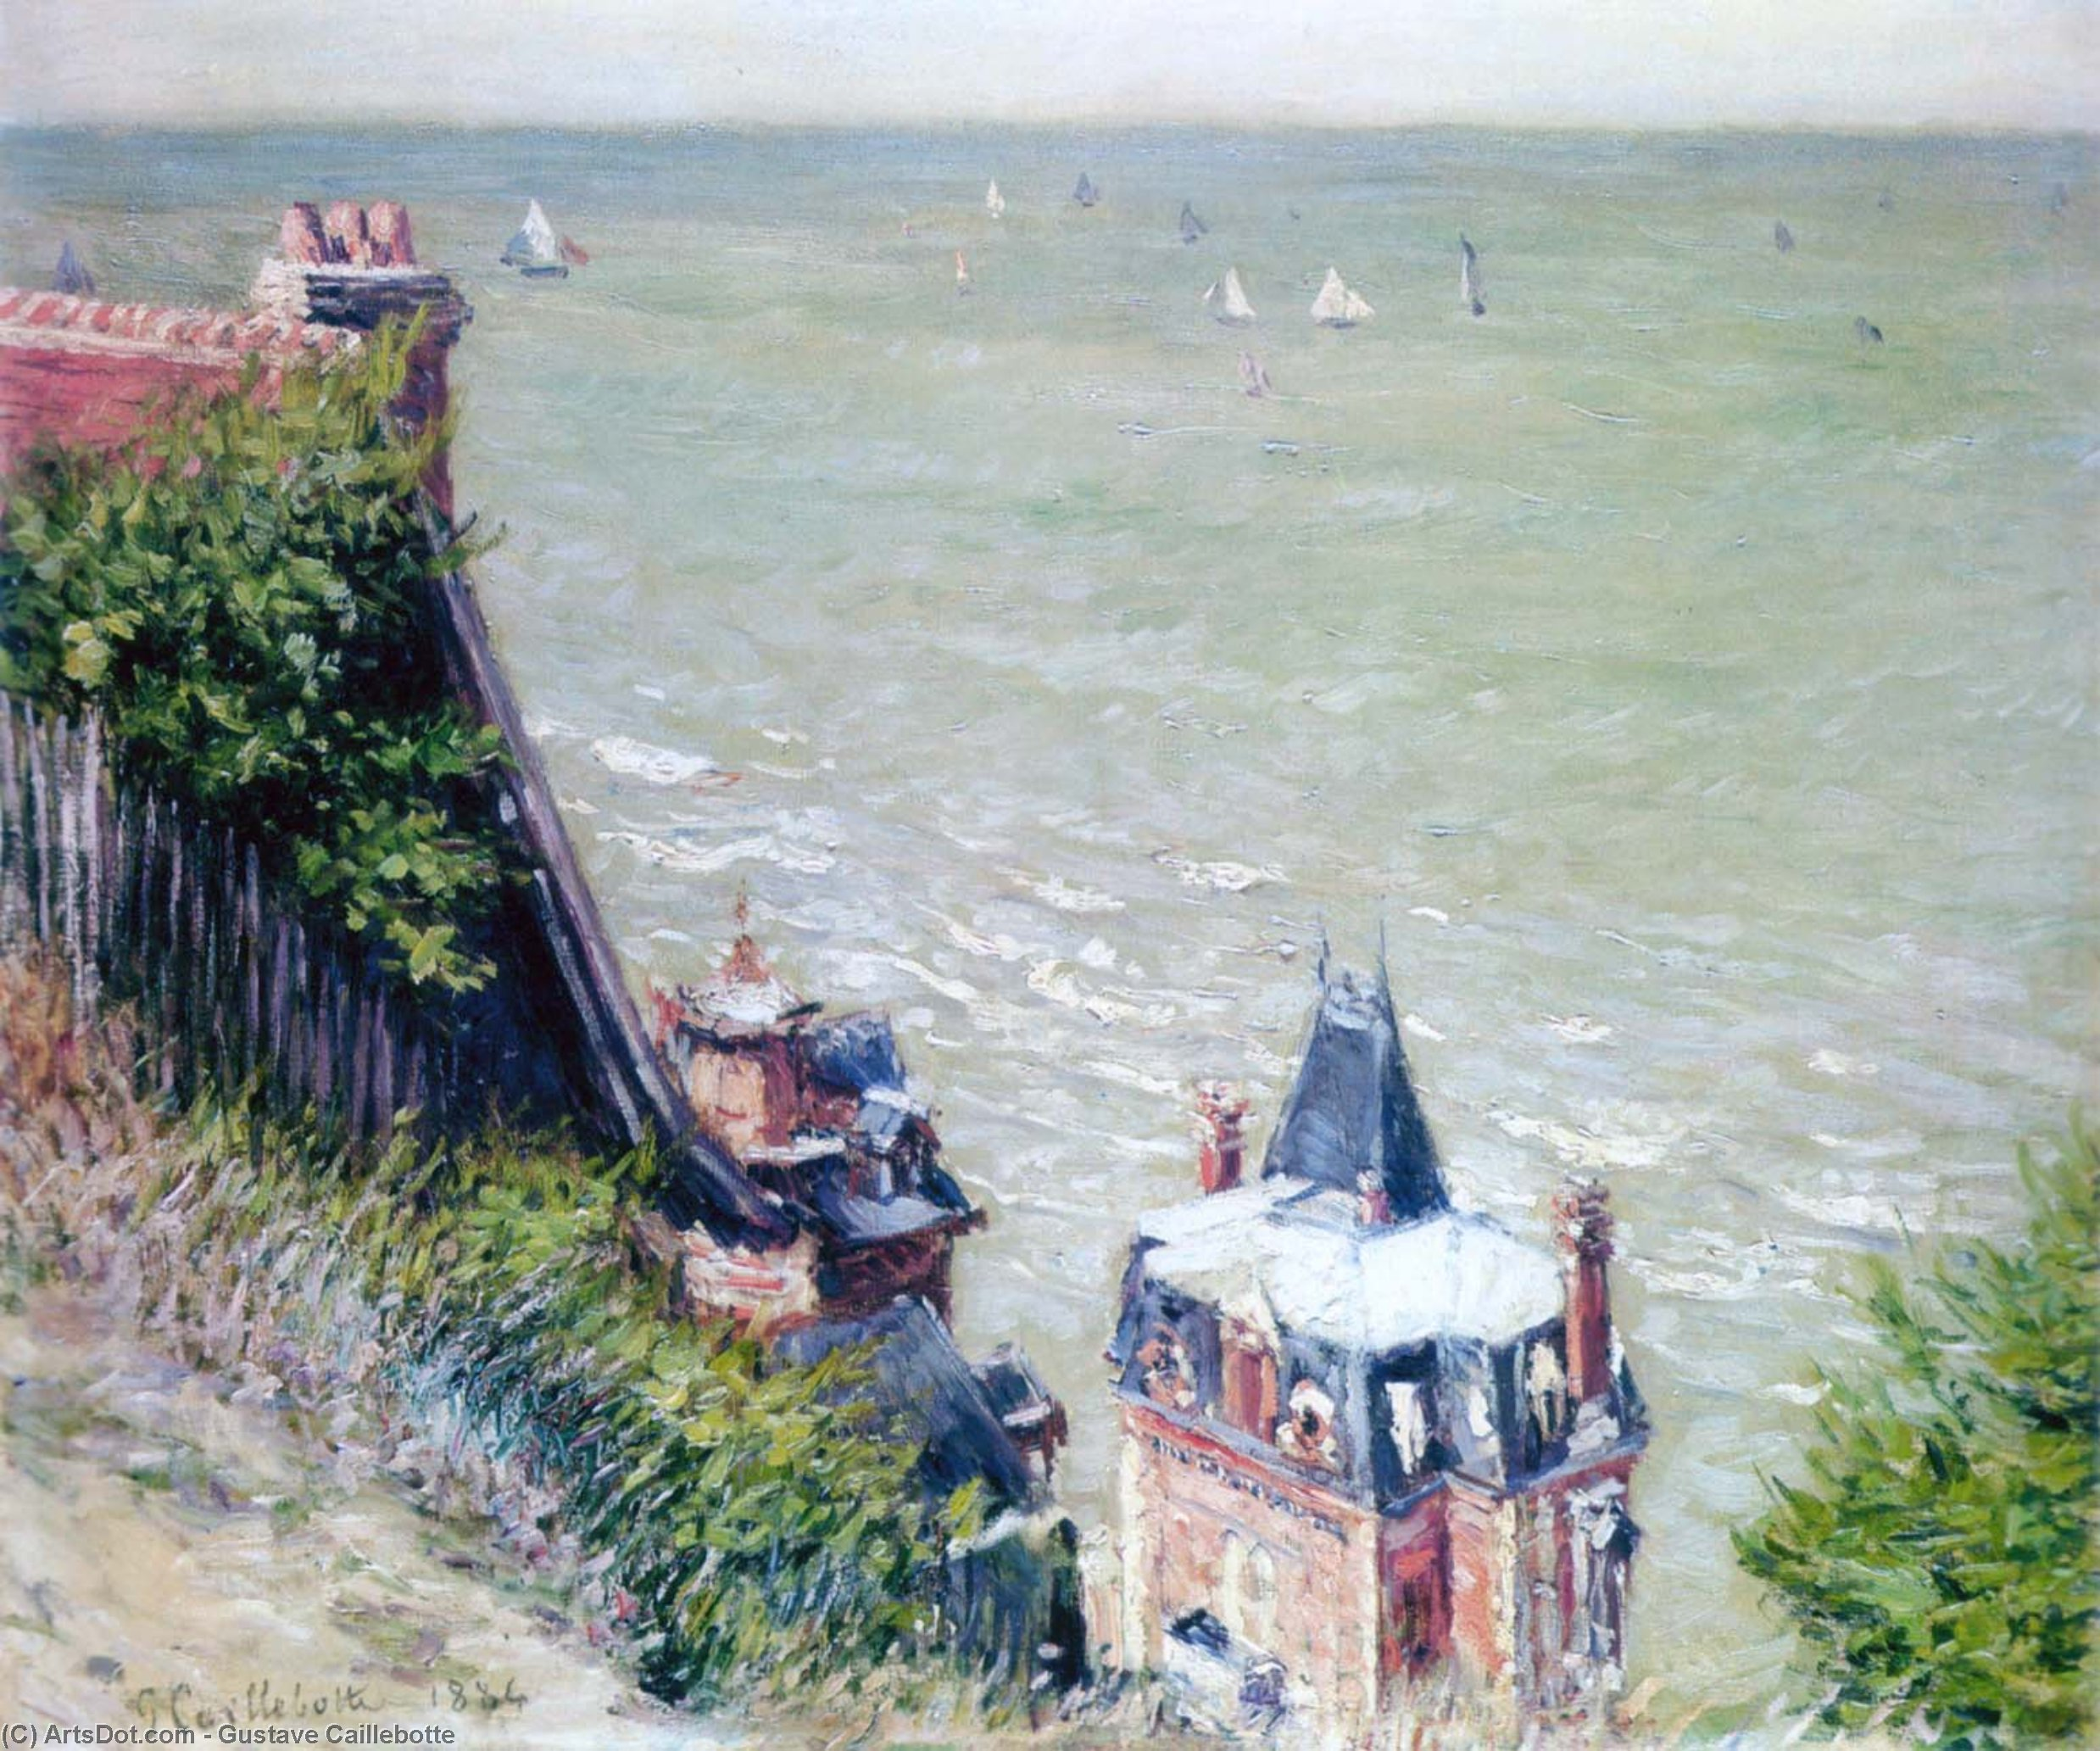 Pink Villas at Trouville, 1884 by Gustave Caillebotte (1848-1894, France) | Oil Painting | ArtsDot.com